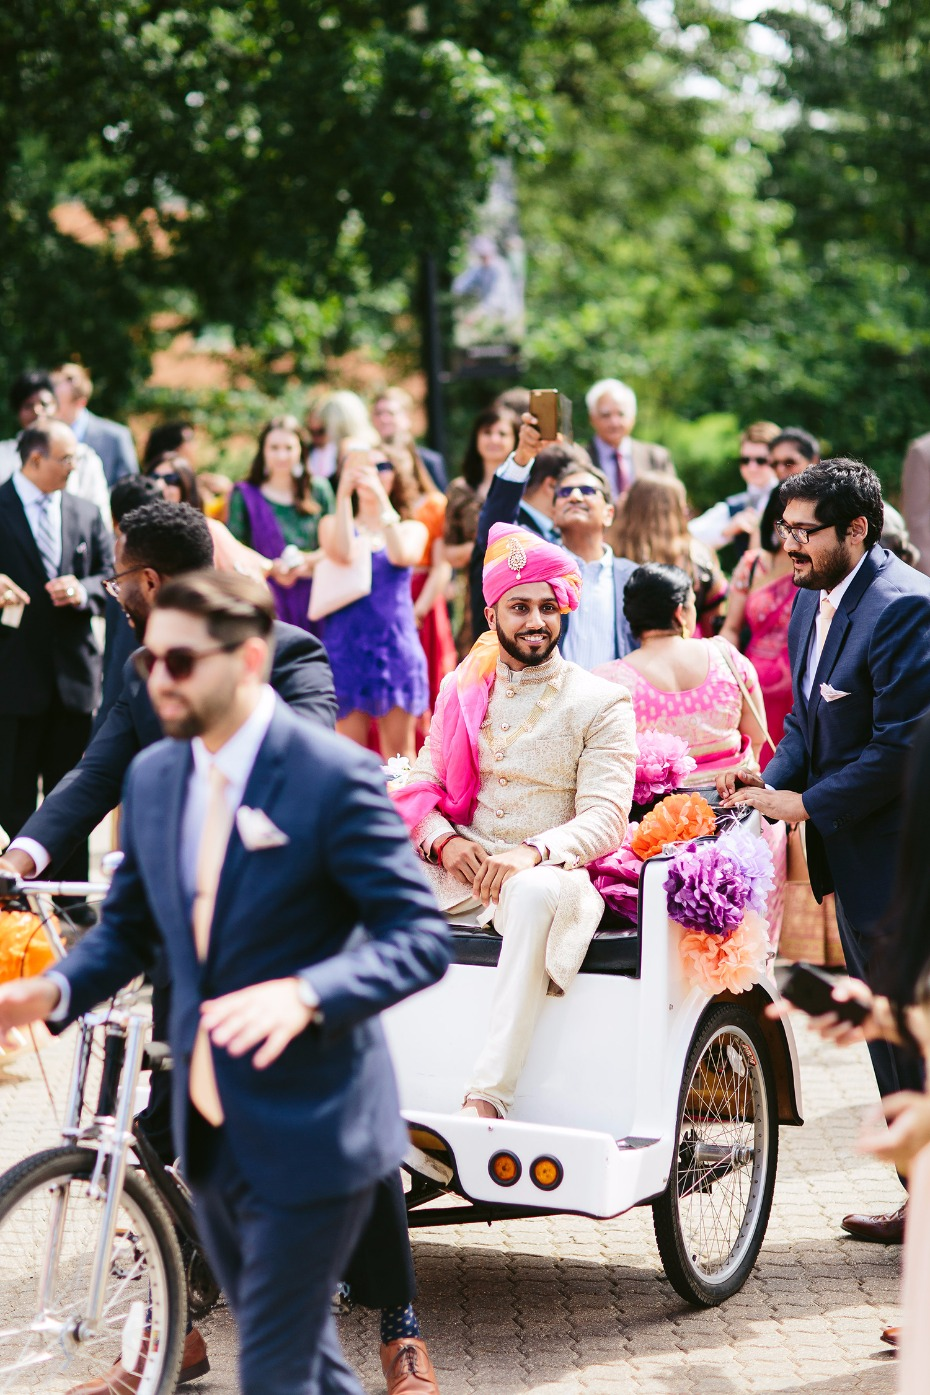 grooms arrival - the baraat